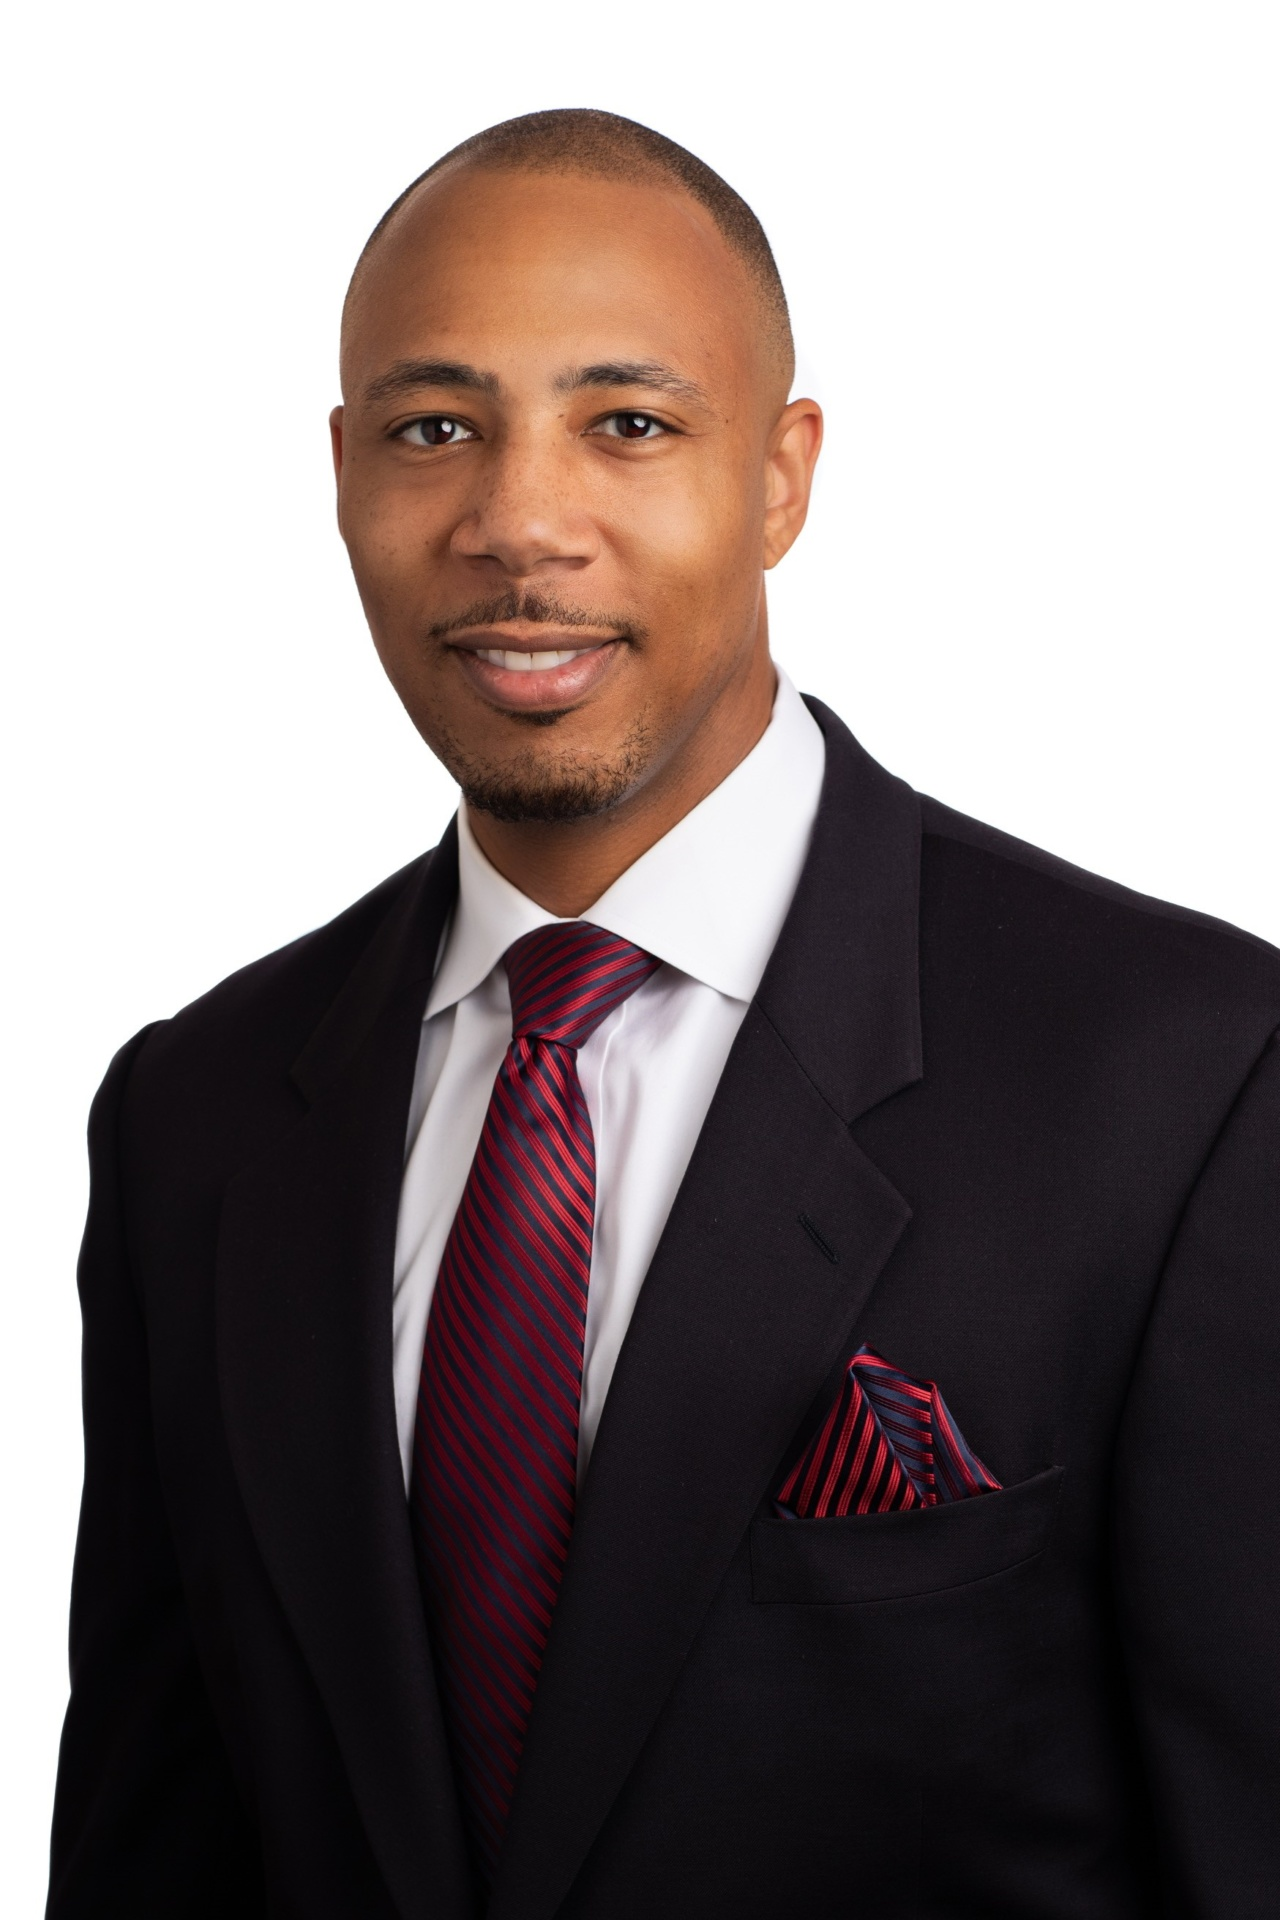 Dr. Mikal Anderson